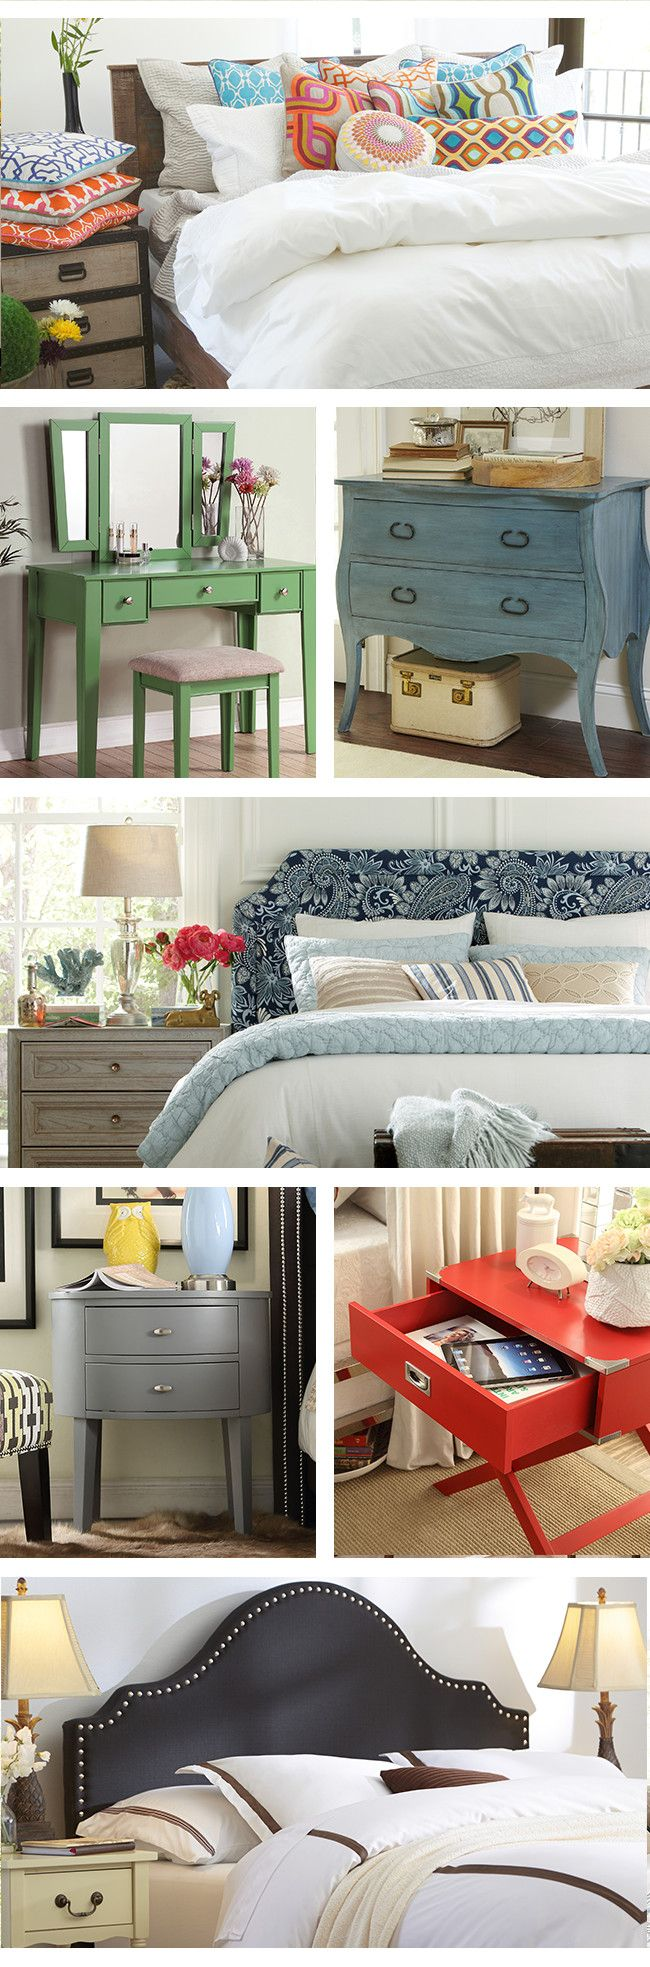 With our incredible selection of bedroom furniture like headboards, dressers, and armoires you can make your dream bedroom a reality. Visit Wayfair and sign up today to get access to exclusive deals everyday up to 70% off. Free shipping on all orders over $49.